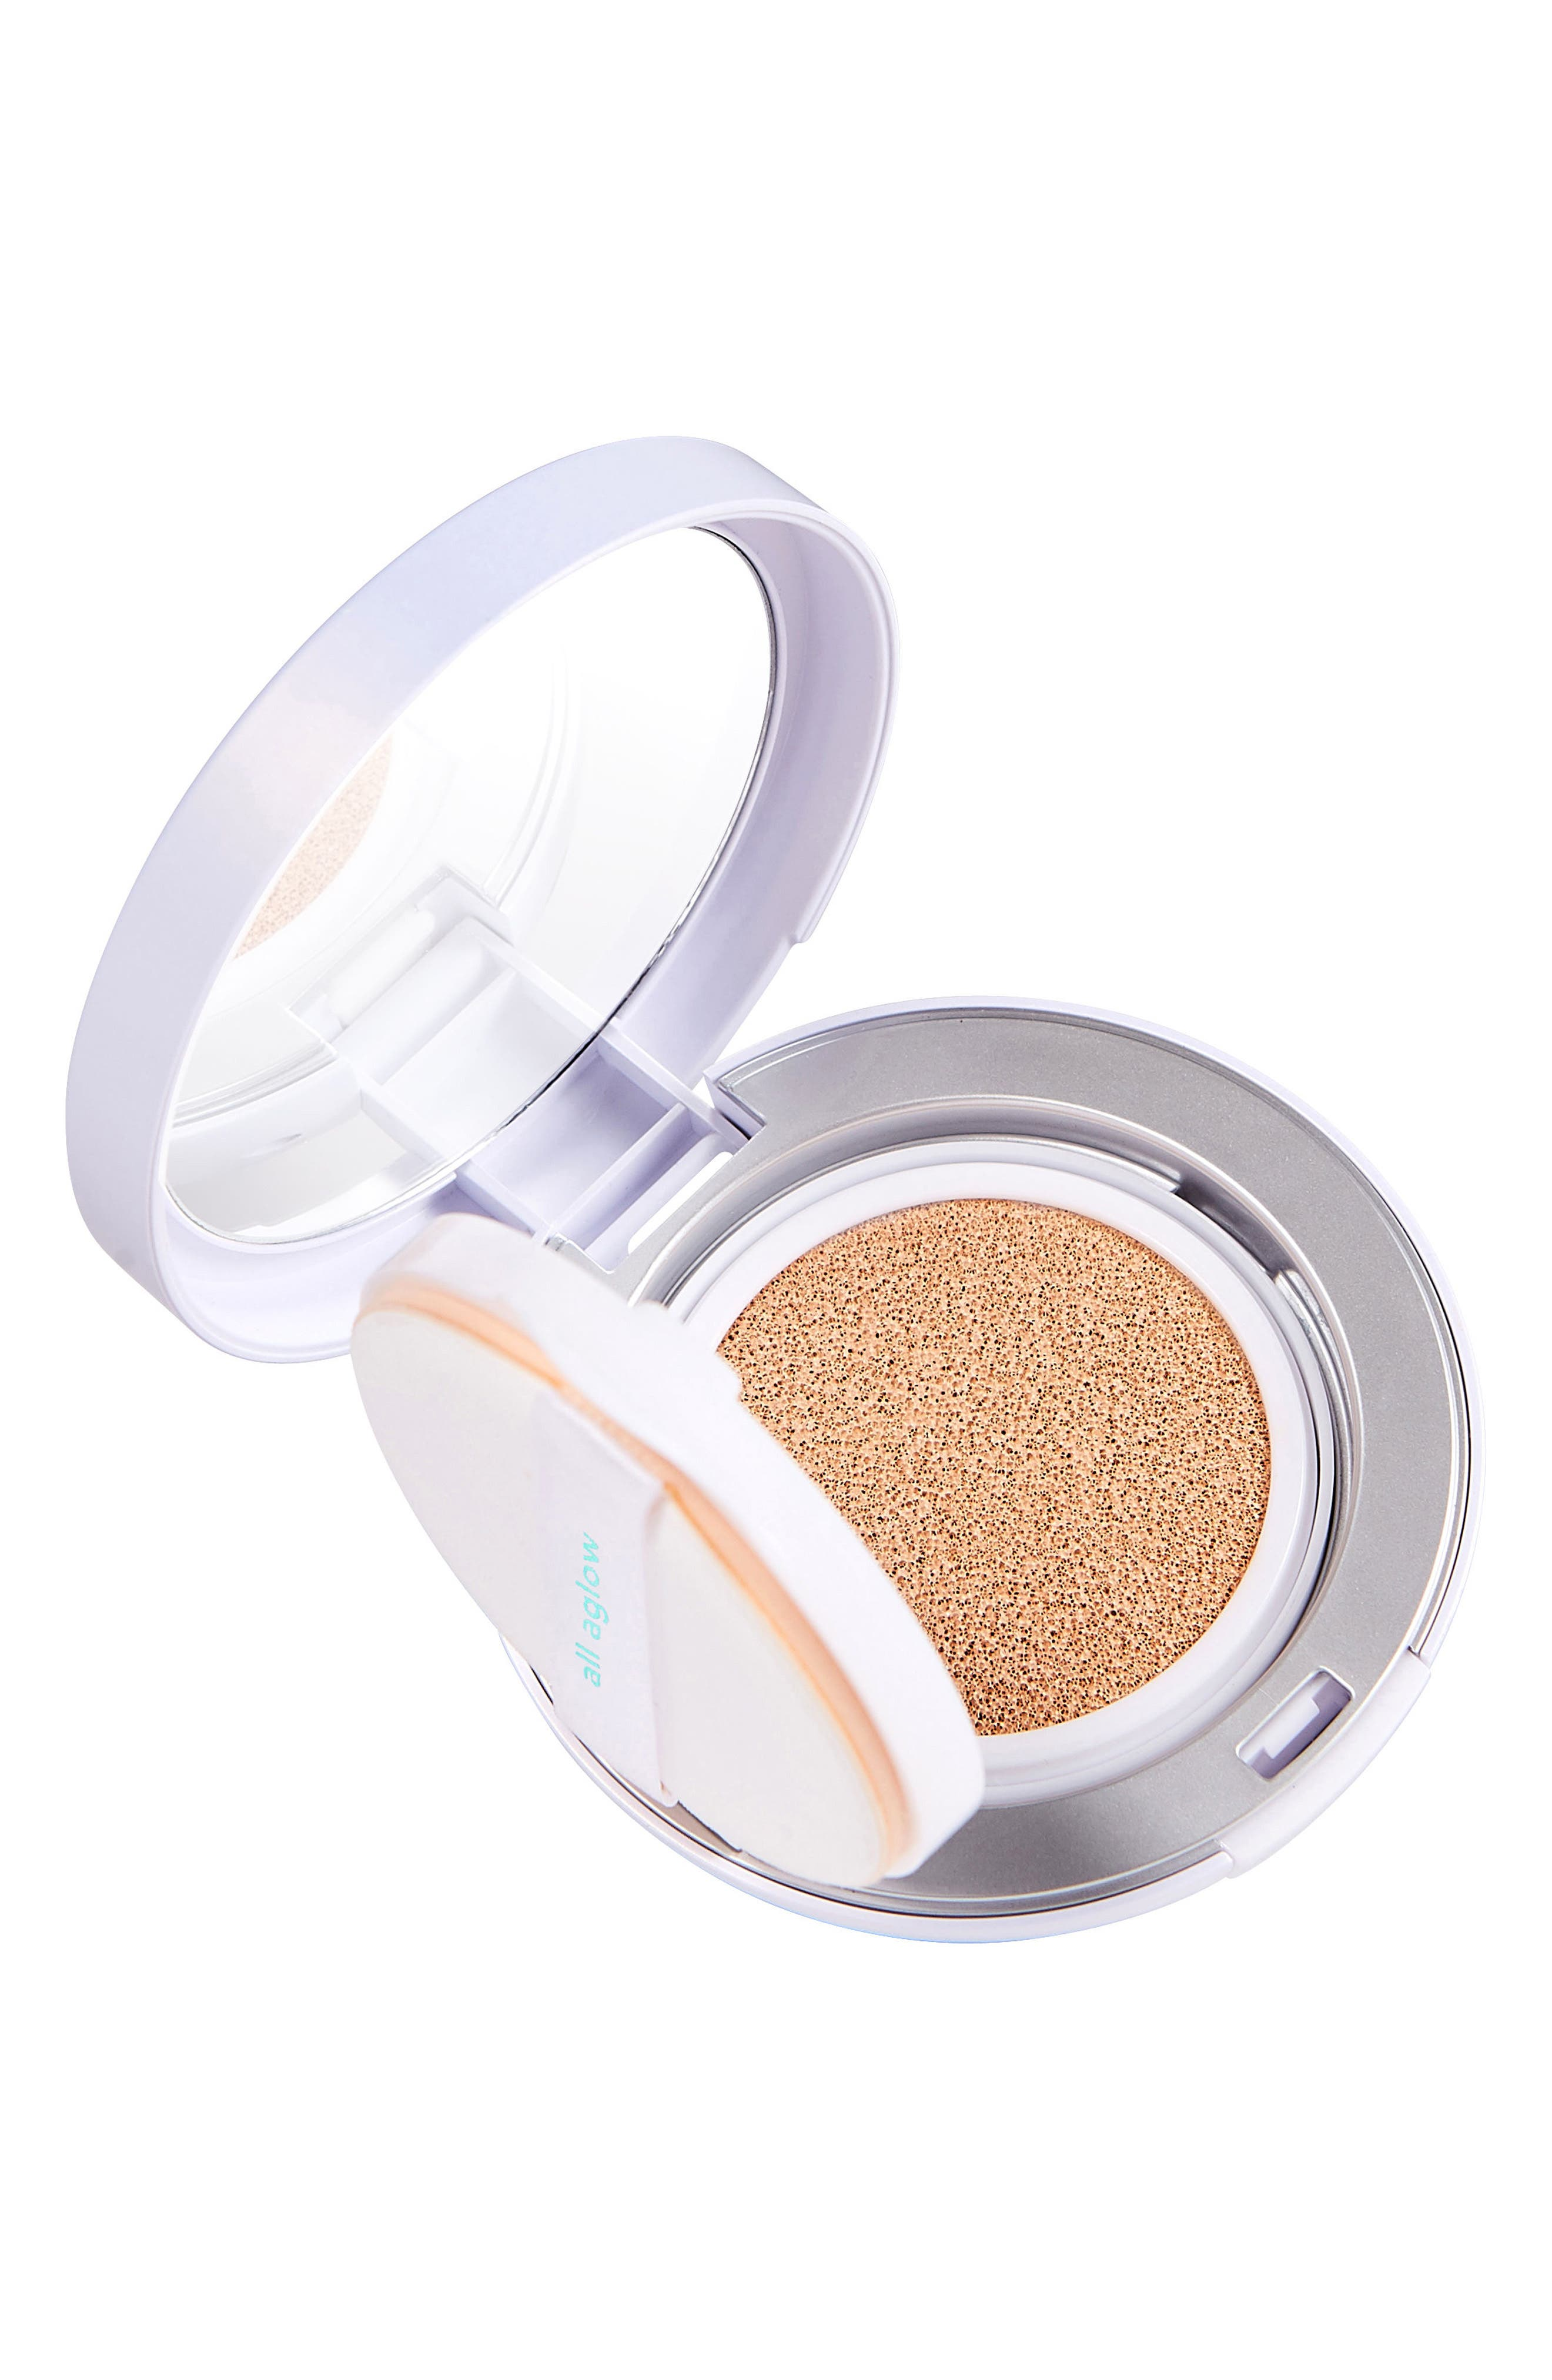 All Aglow Sunscreen Perfection Cushion Compact SPF 50,                             Alternate thumbnail 4, color,                             02 CHAMPAGNE